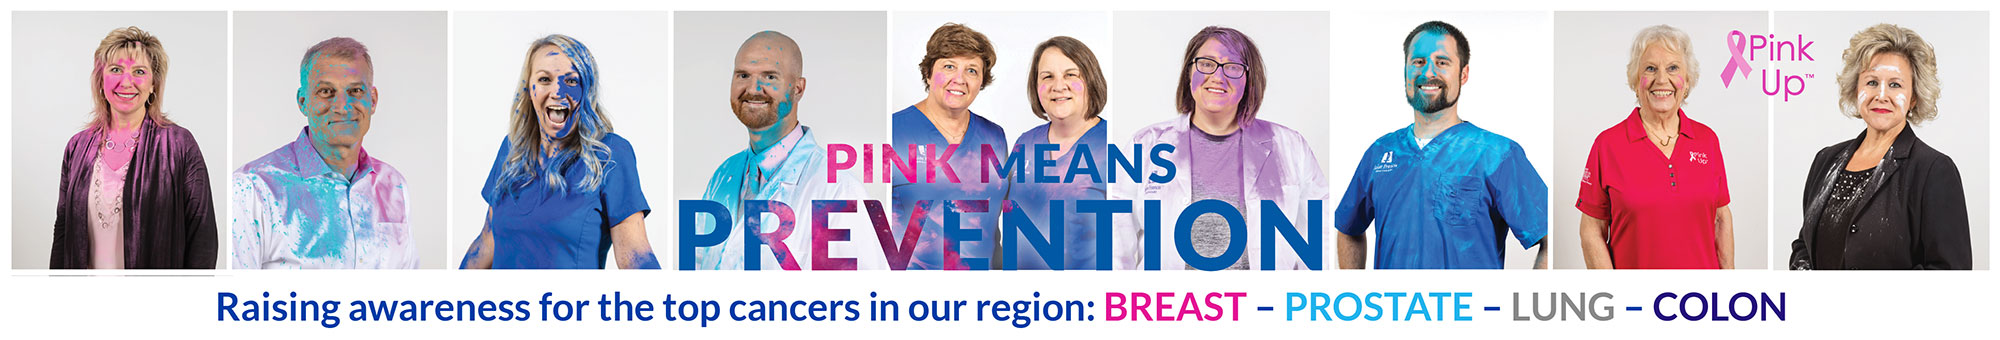 Pink Means Prevention - Raising awareness for the top cancers in our region: breast, prostate, lung and colon